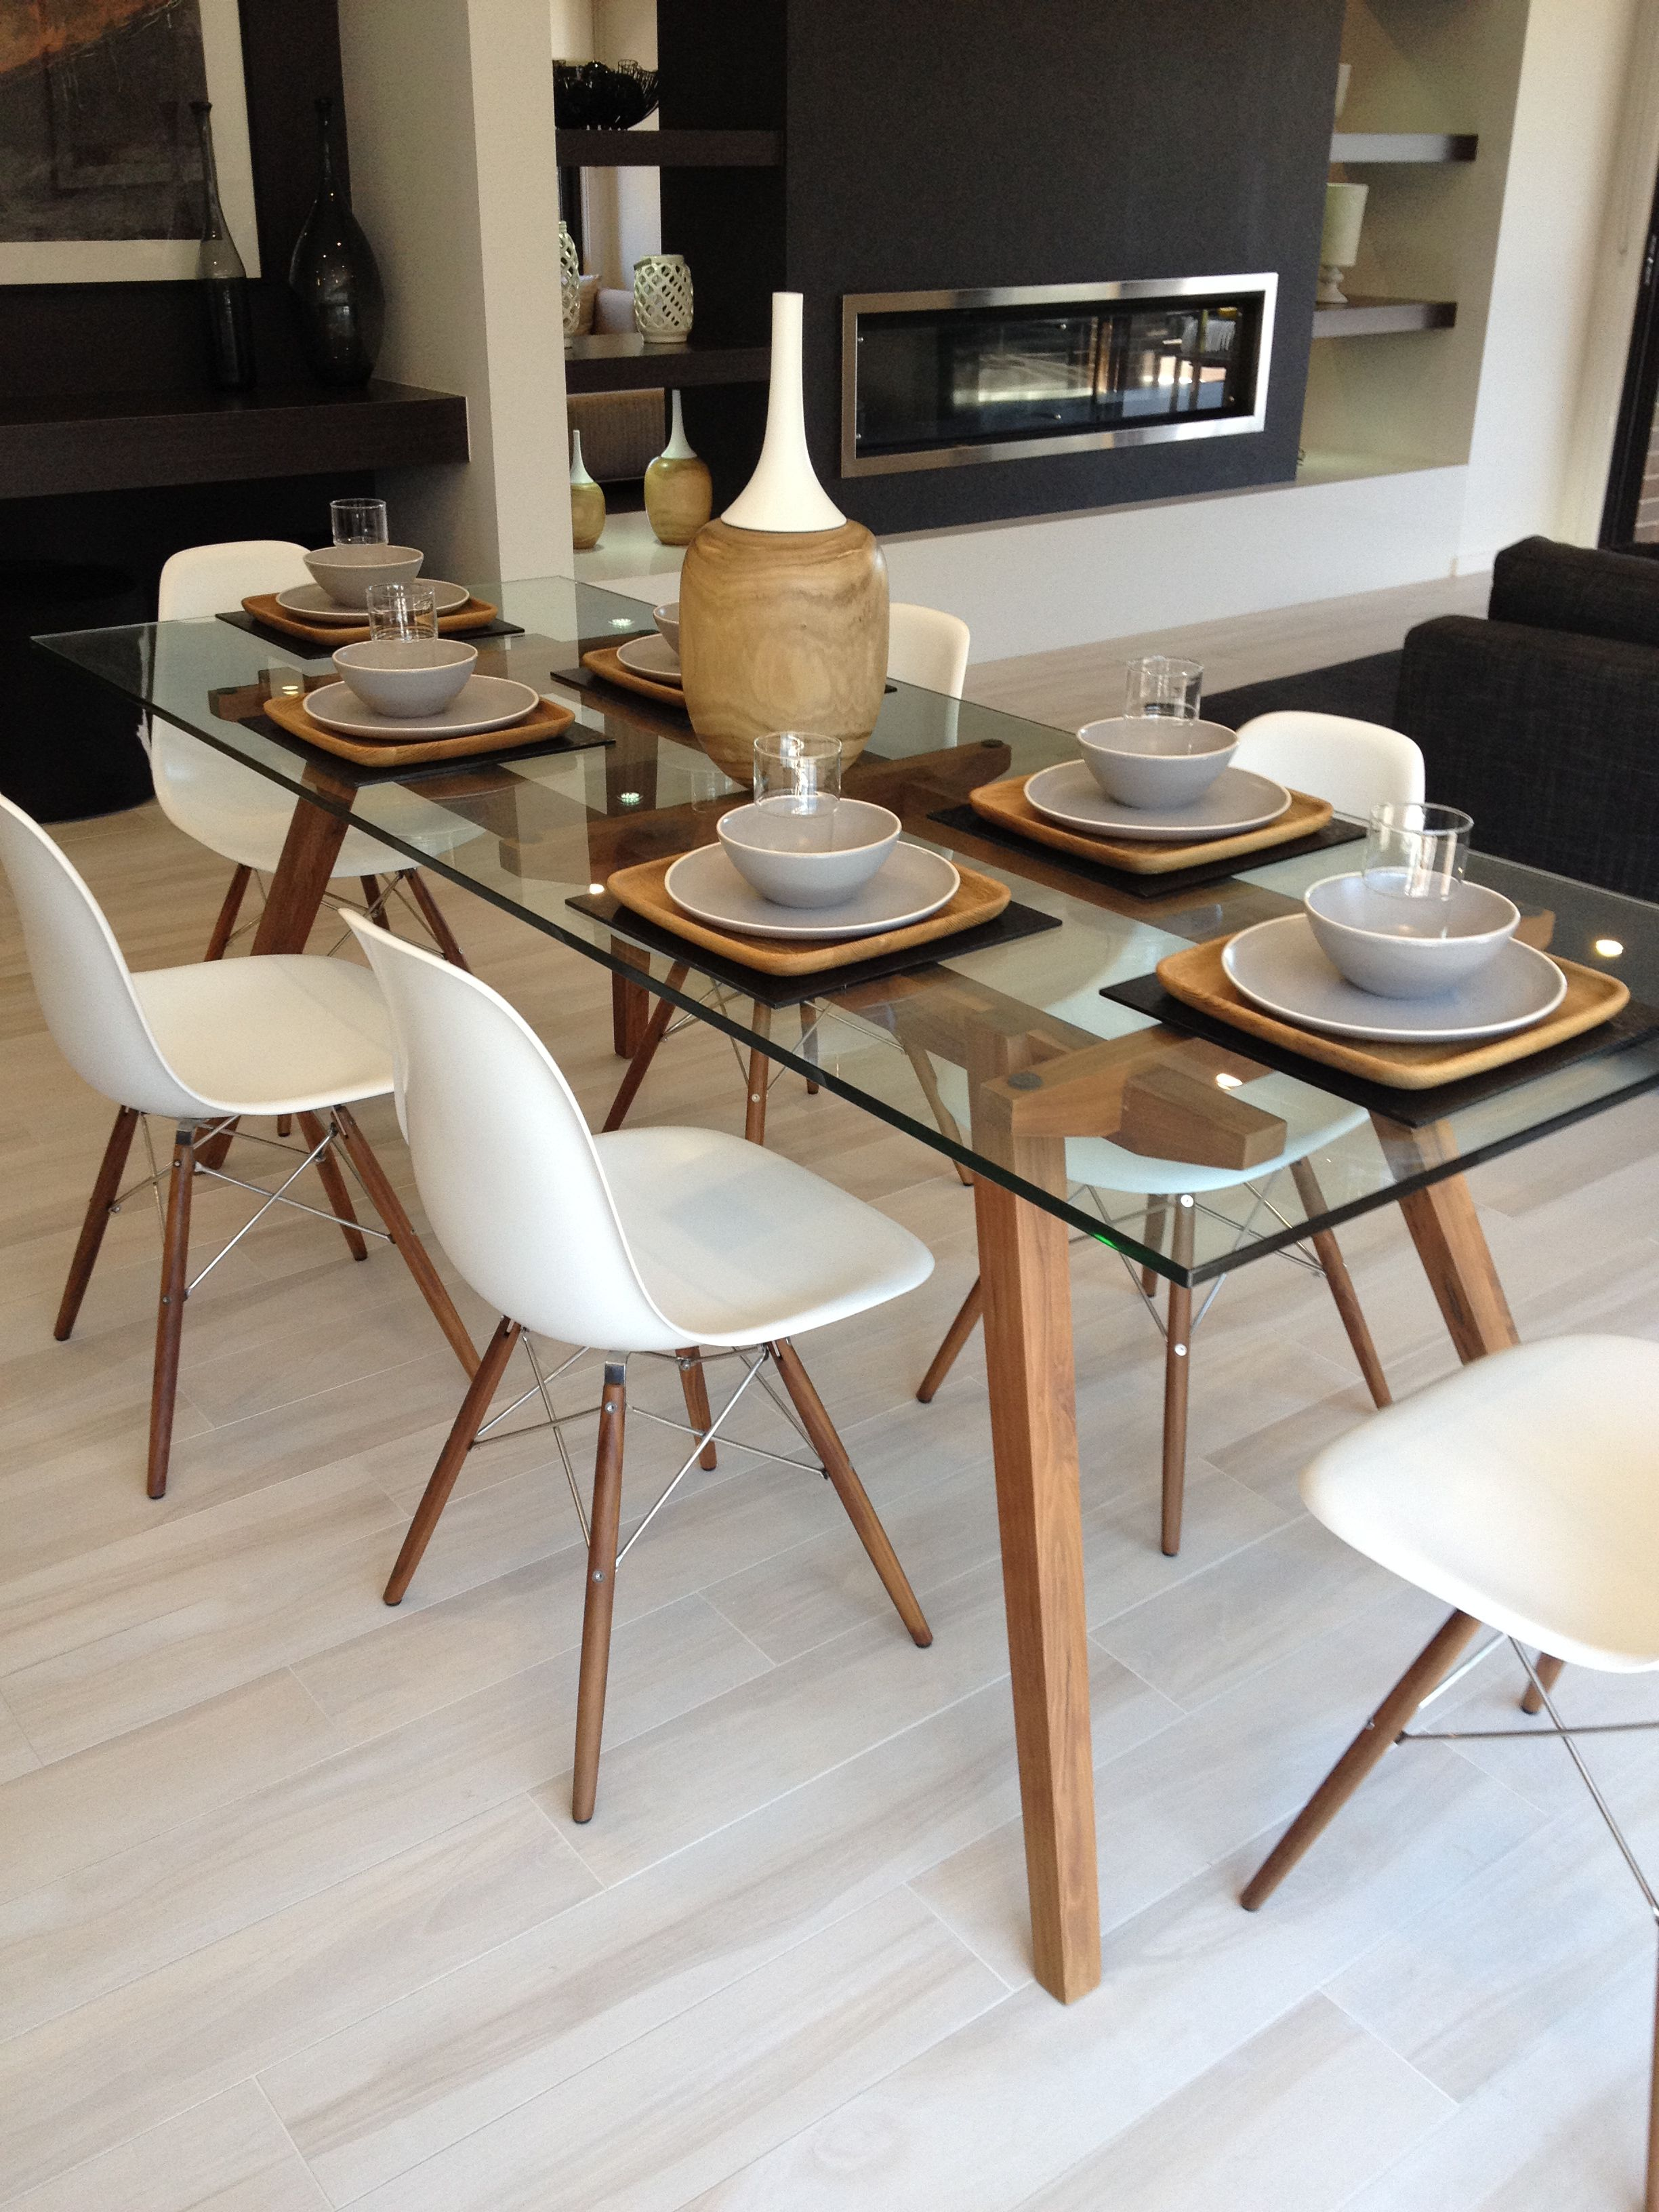 Top 20 Dining Room Table Set Ideas | Dining room decorating ...